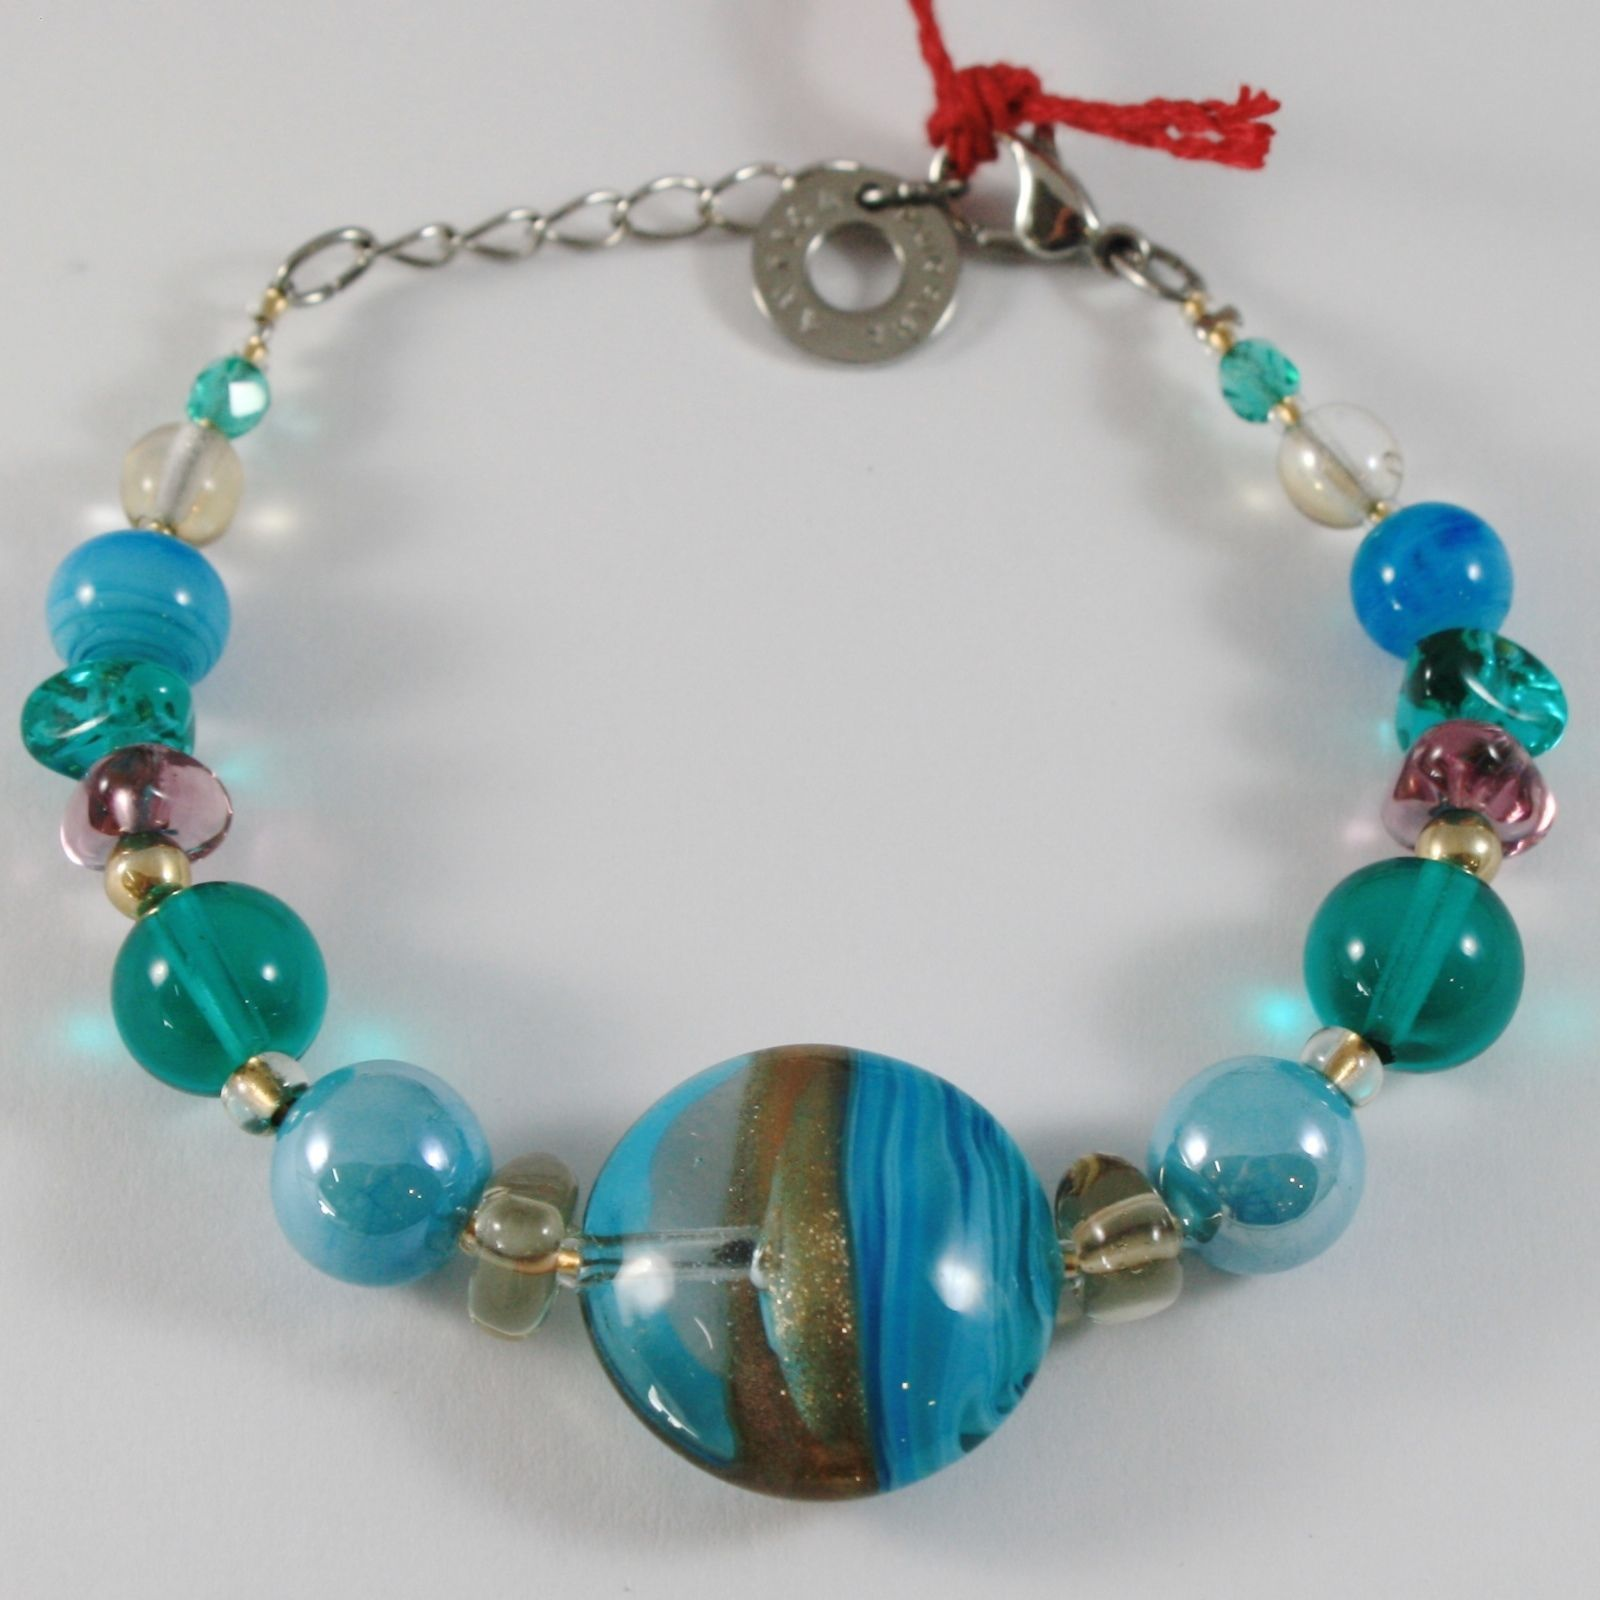 ANTICA MURRINA VENEZIA NIAGARA BRACELET BLUE GREEN TURQUOISE FINELY STRIPED DISC